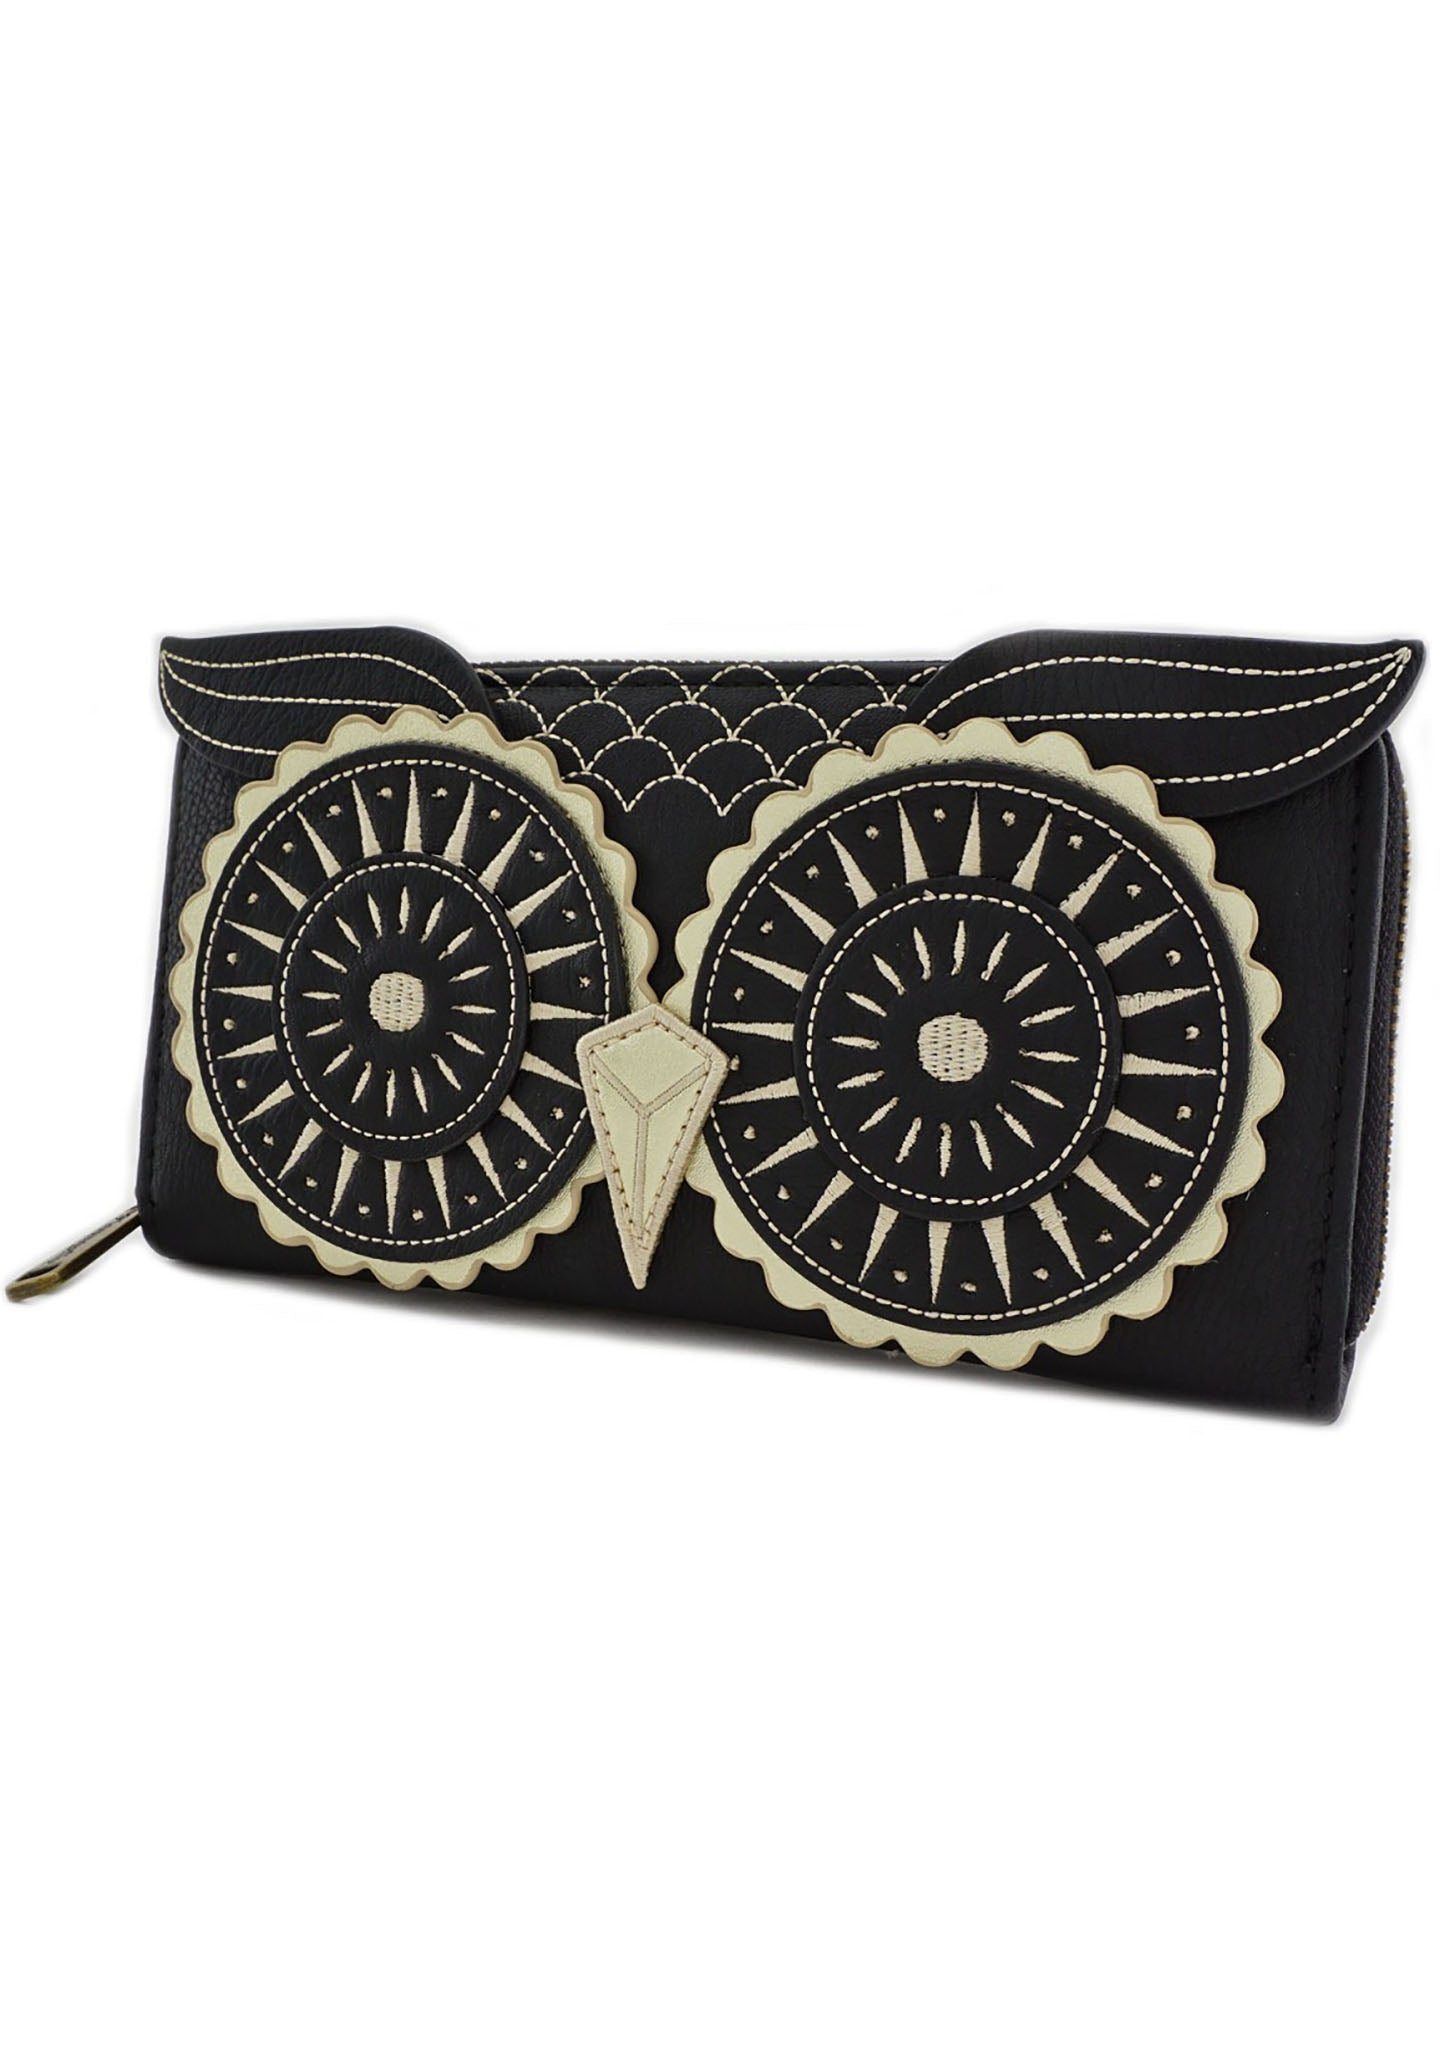 Loungefly Owl Face Zip Around Wallet in Black/Gold